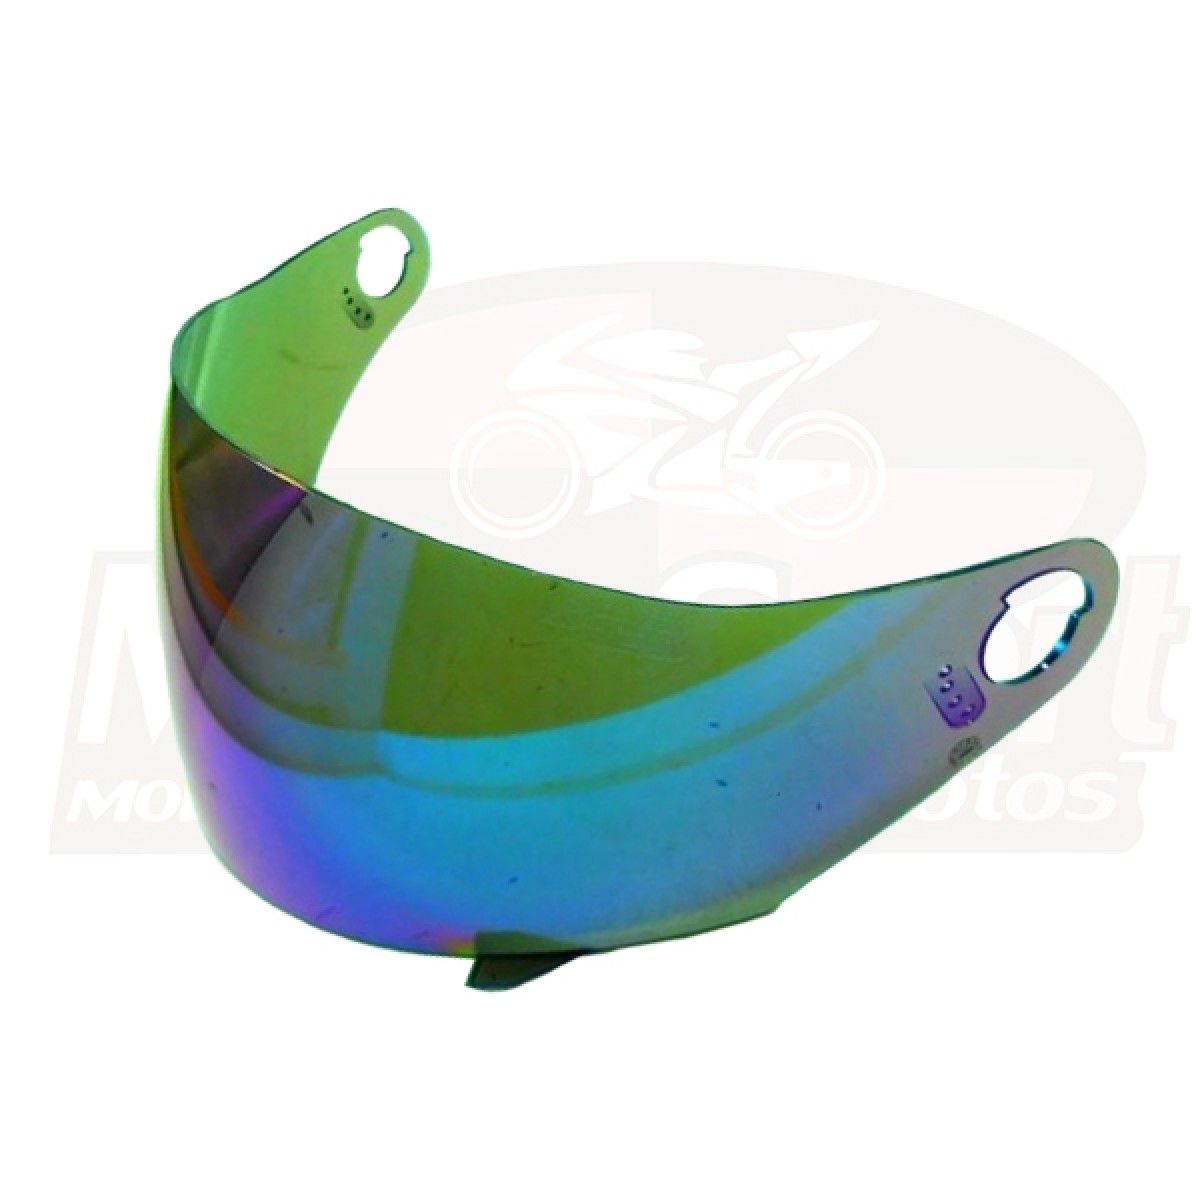 VISEIRA CAPACETE LIBERTY THREE 2MM CAMALEAO